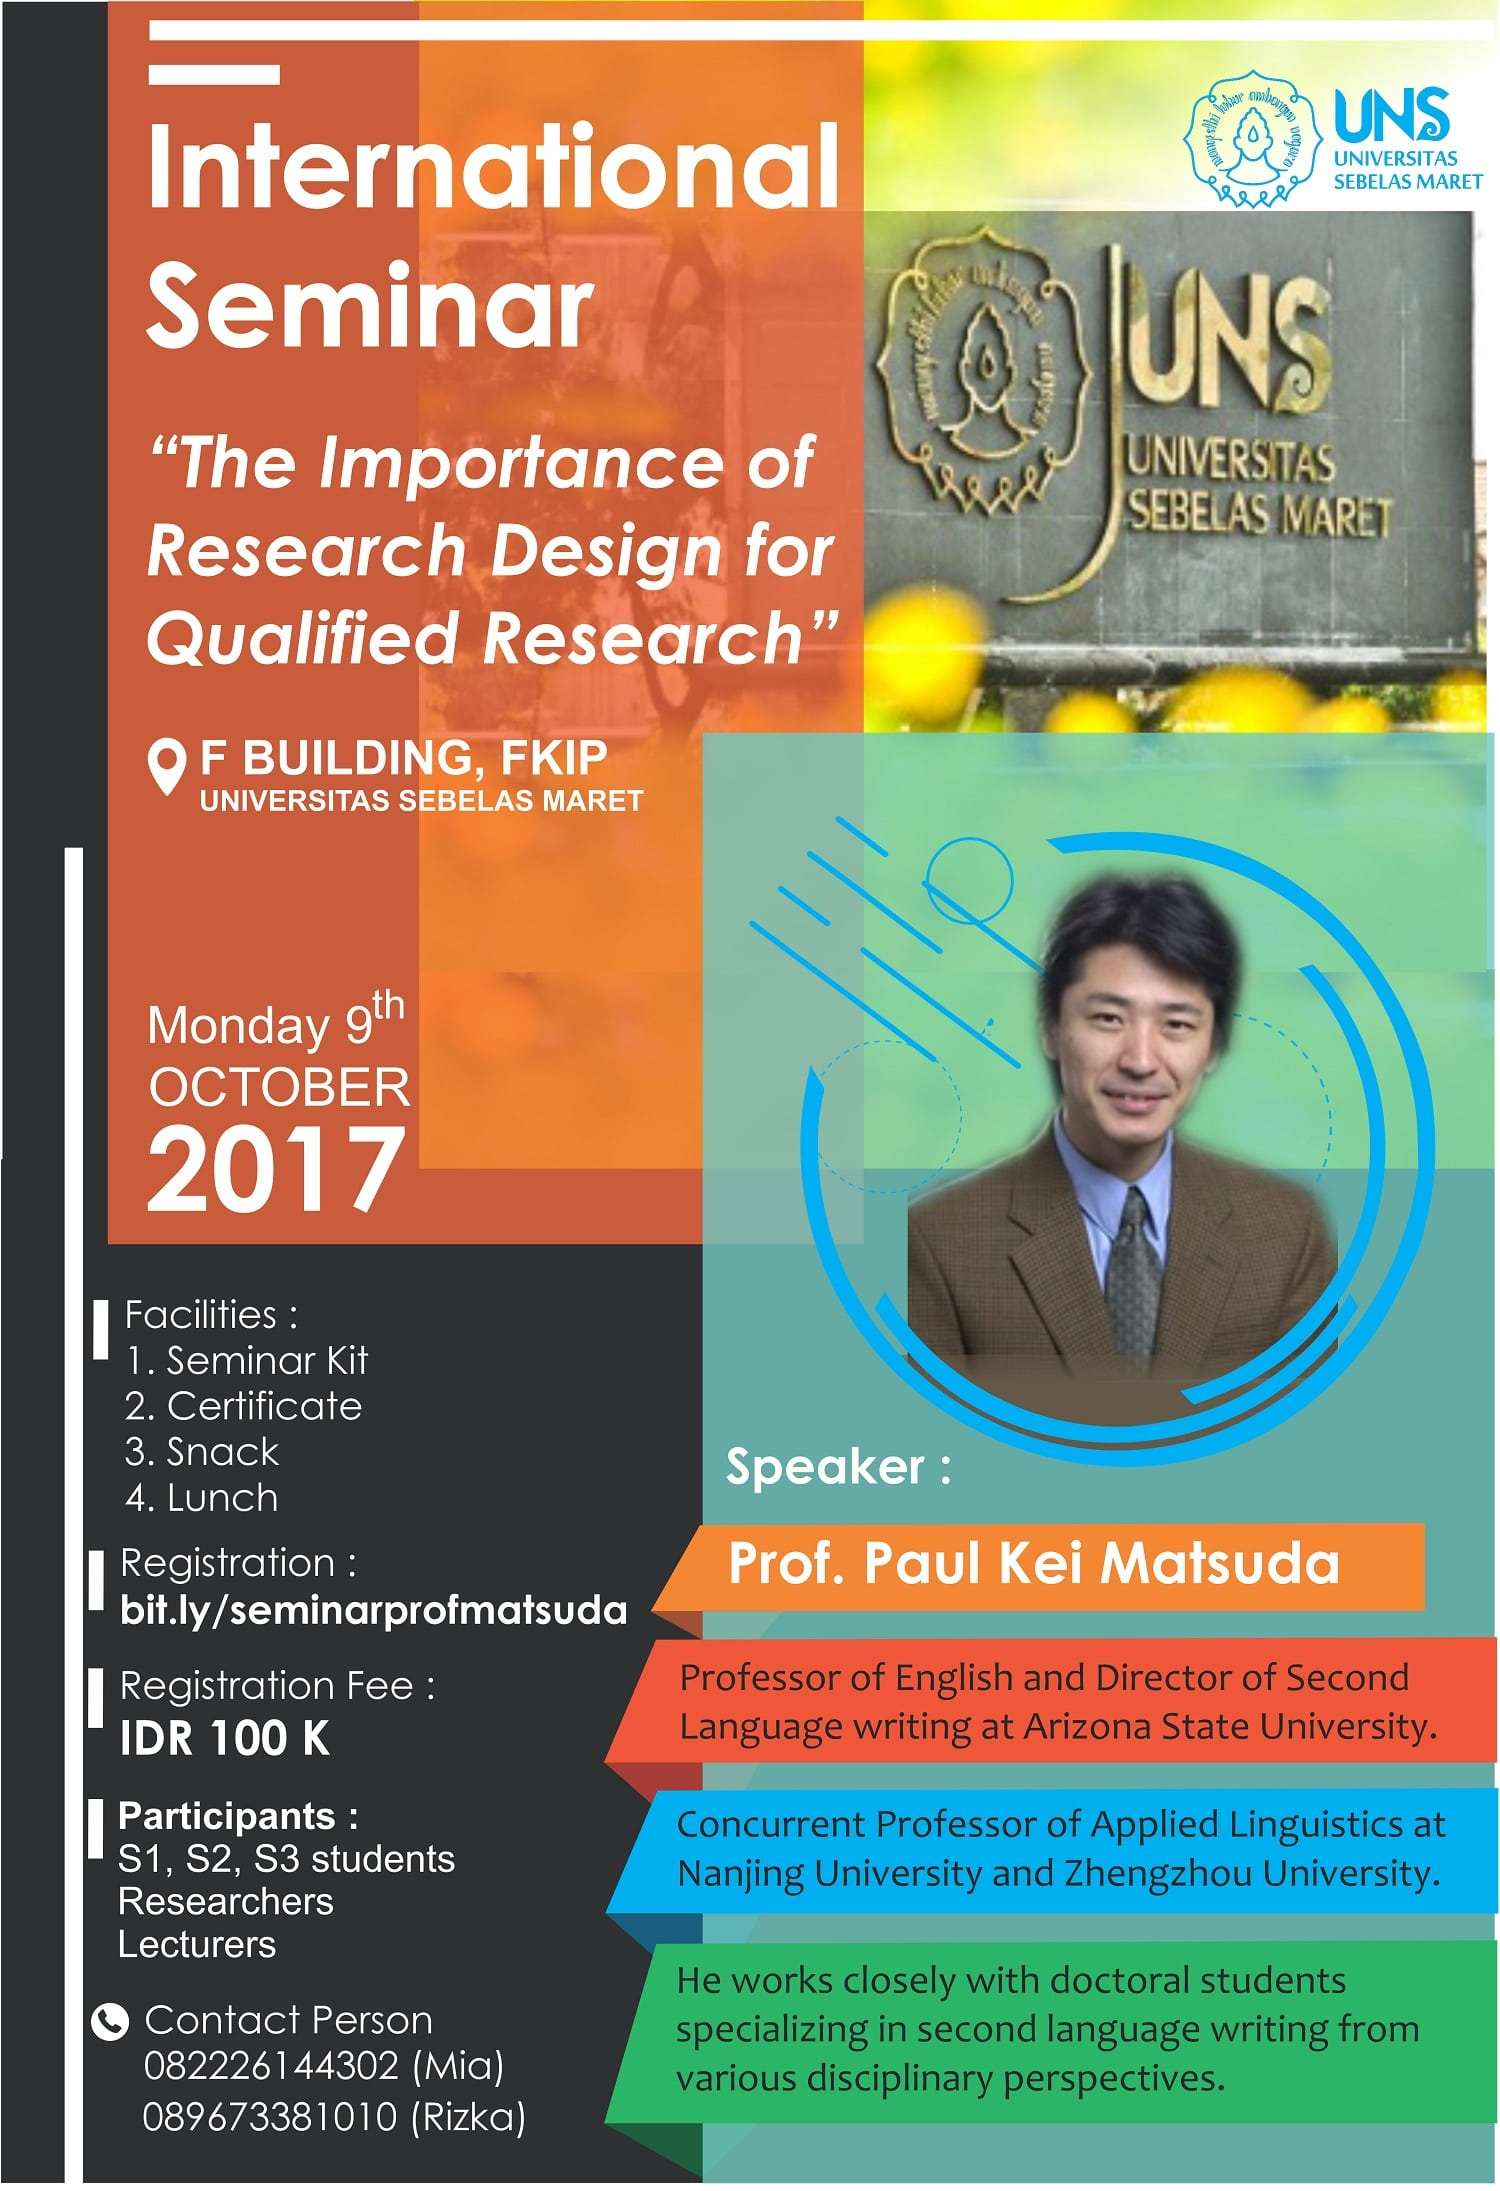 International Seminar on Research Design